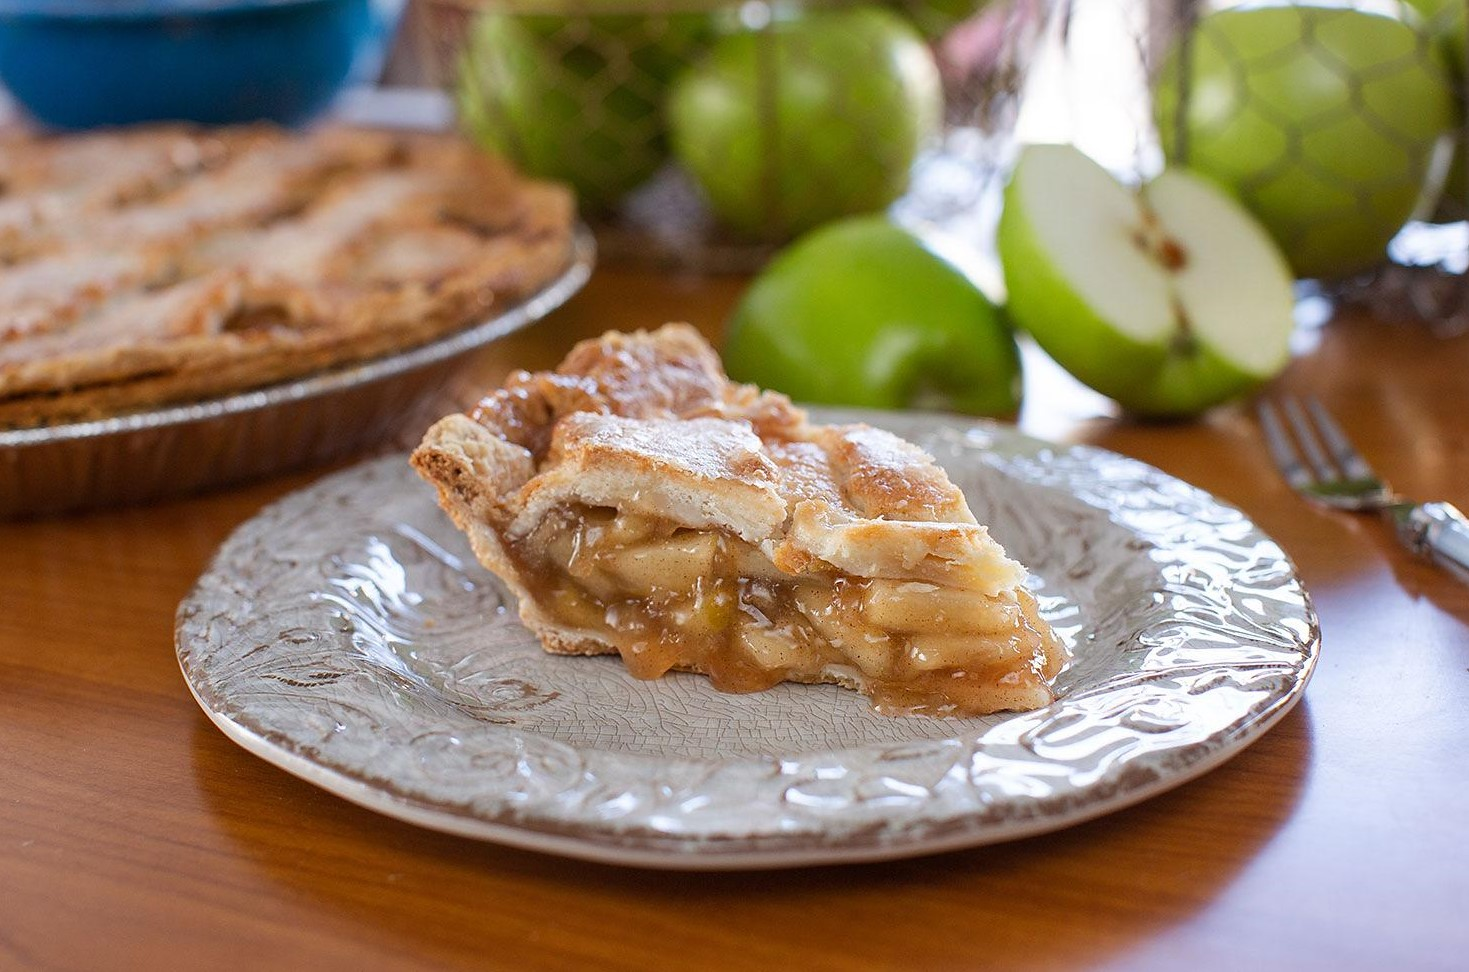 Member's Mark Apple Pie